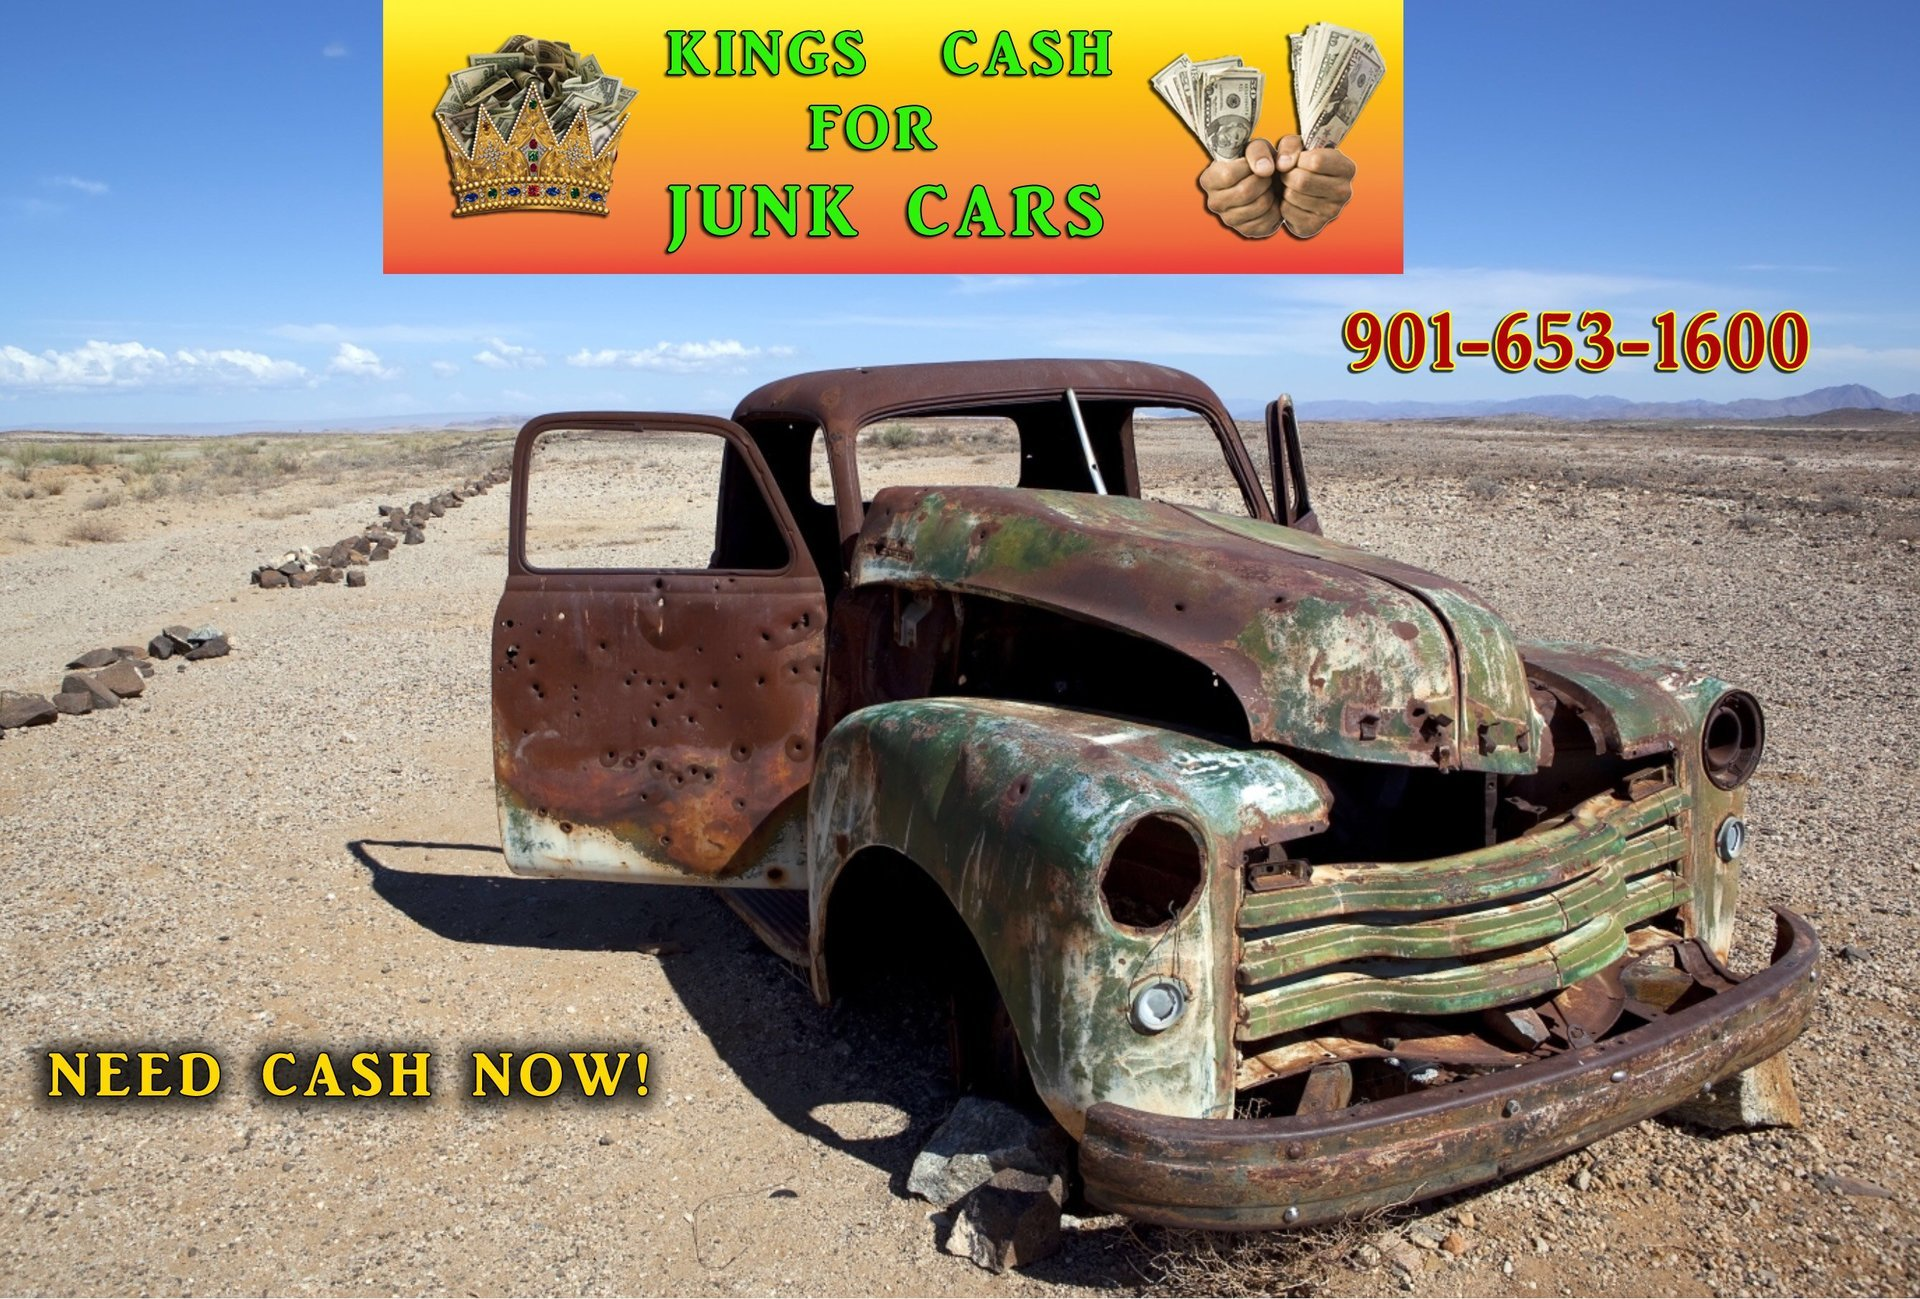 Kings Cash for Junk Cars | Junk Vehicles | Memphis, TN